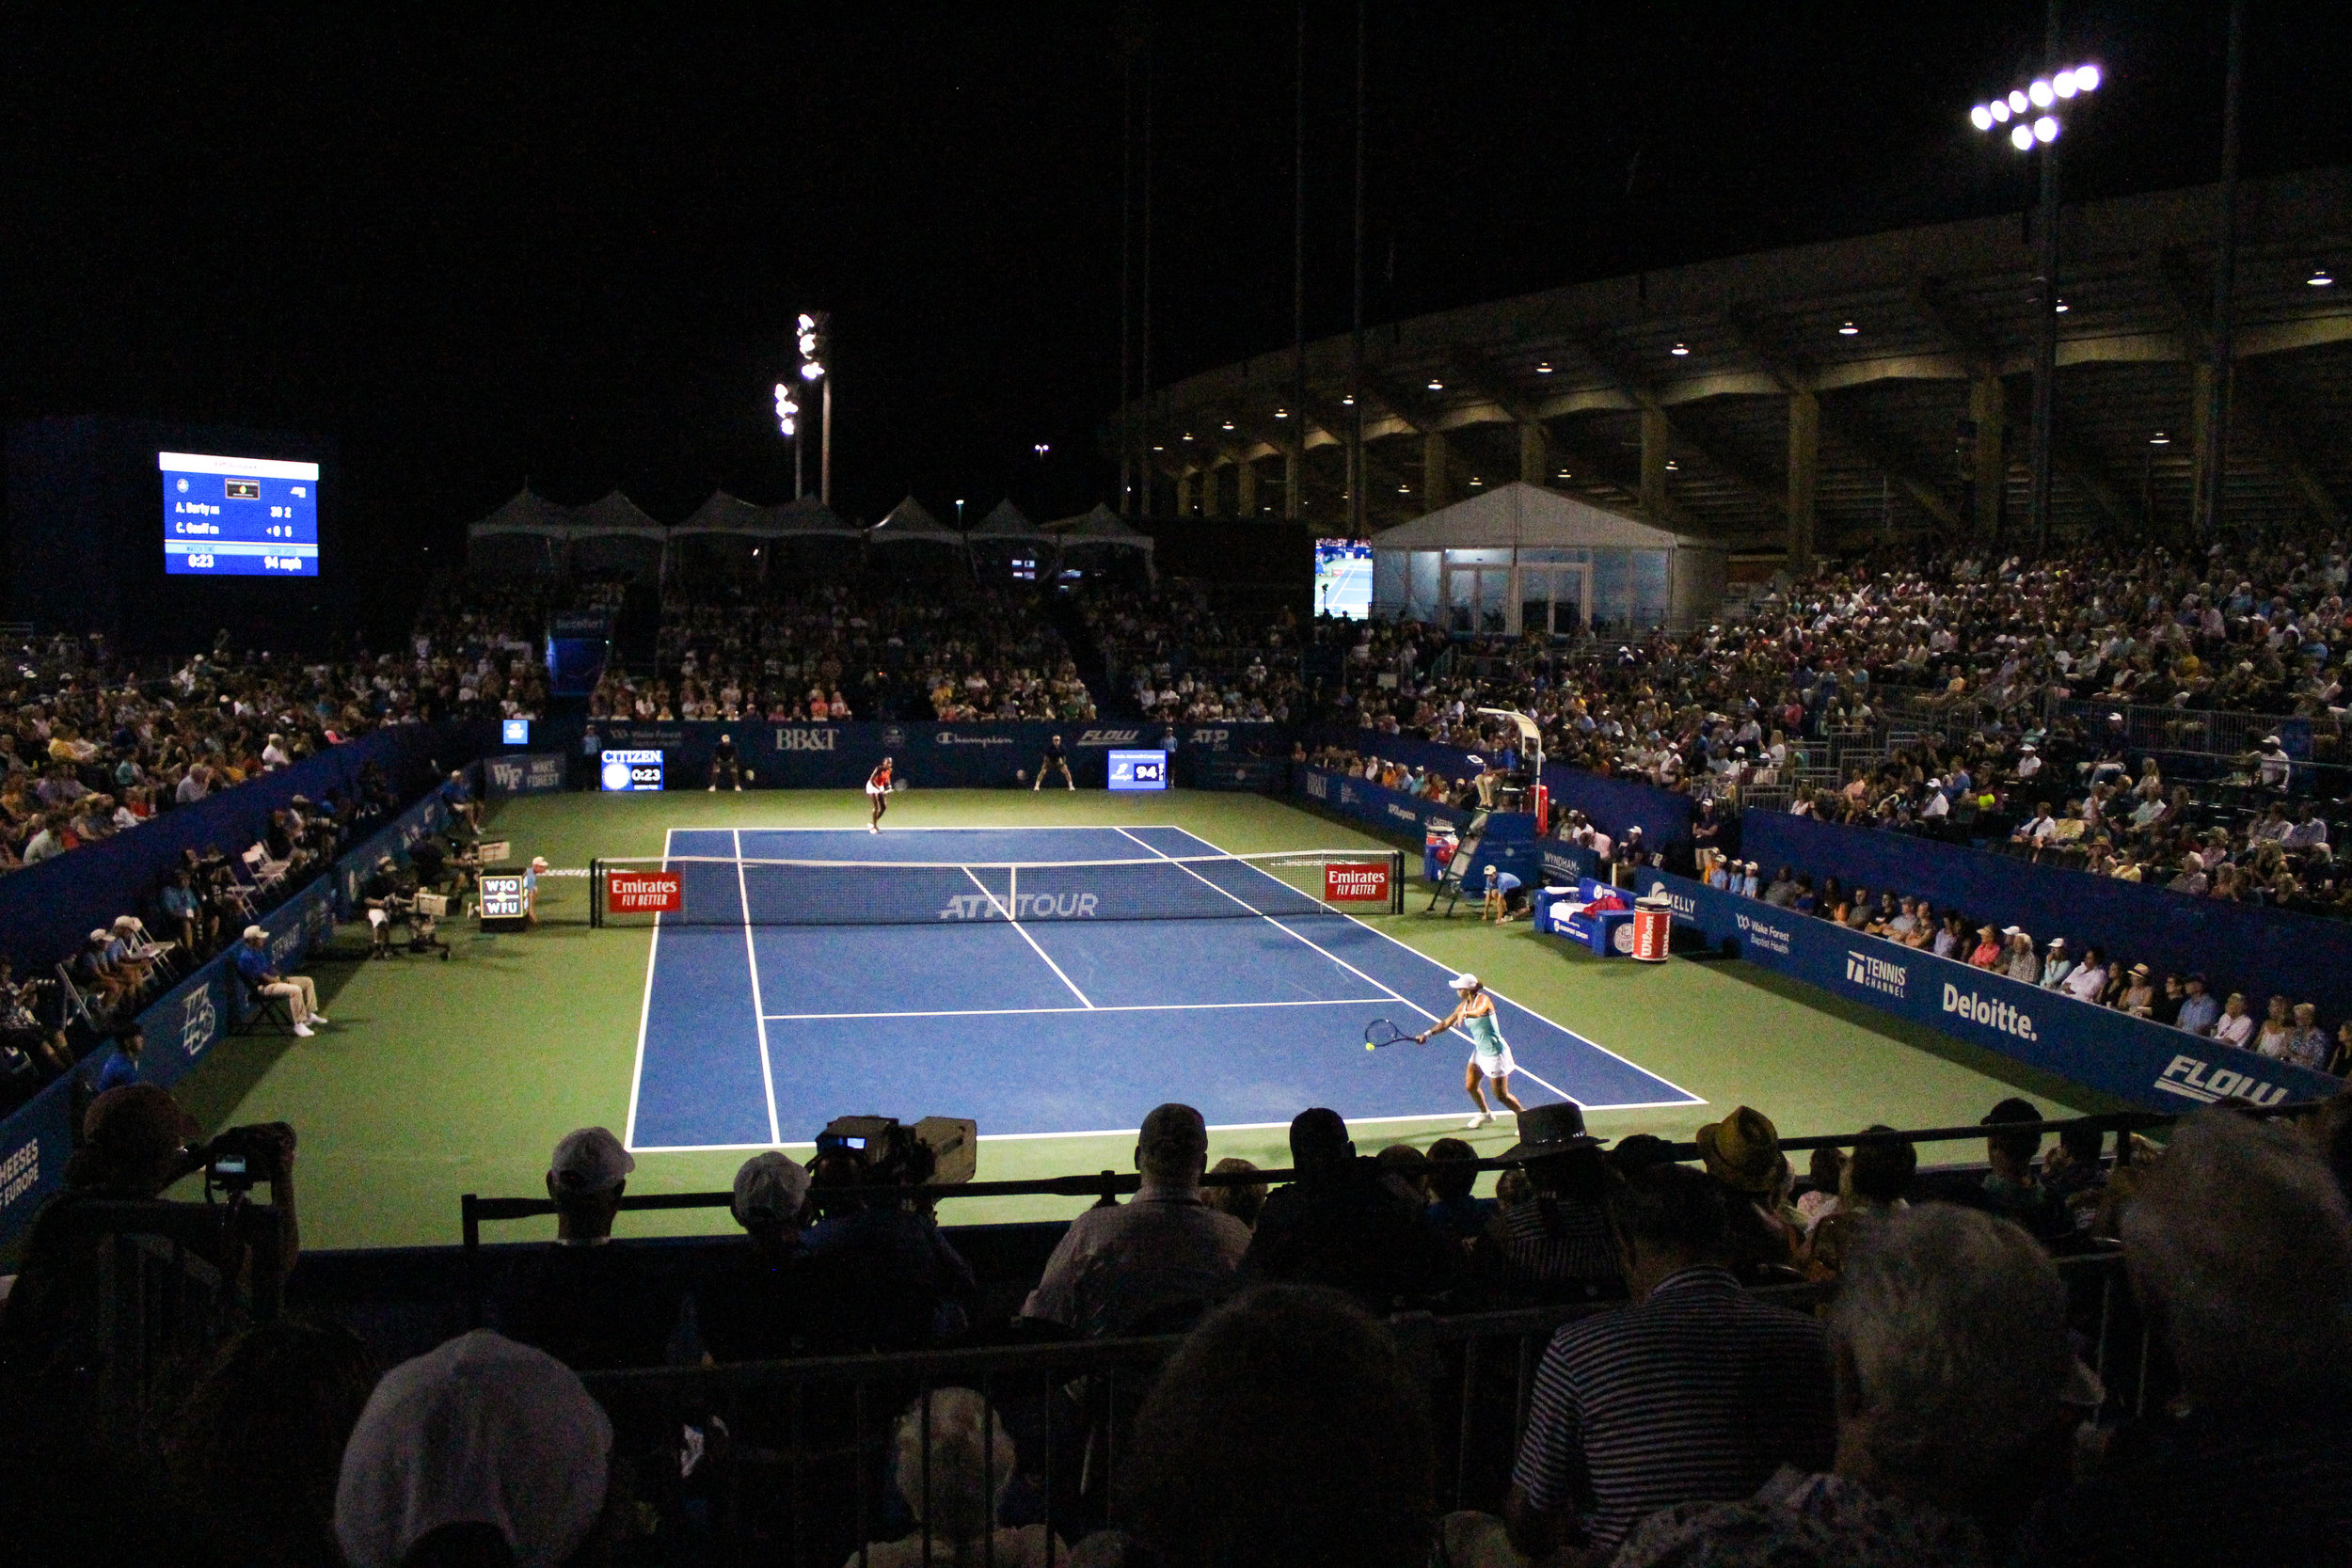 Photo of Ashleigh Barty and Coco Gauff Exhibition at 2019 Winston-Salem Open